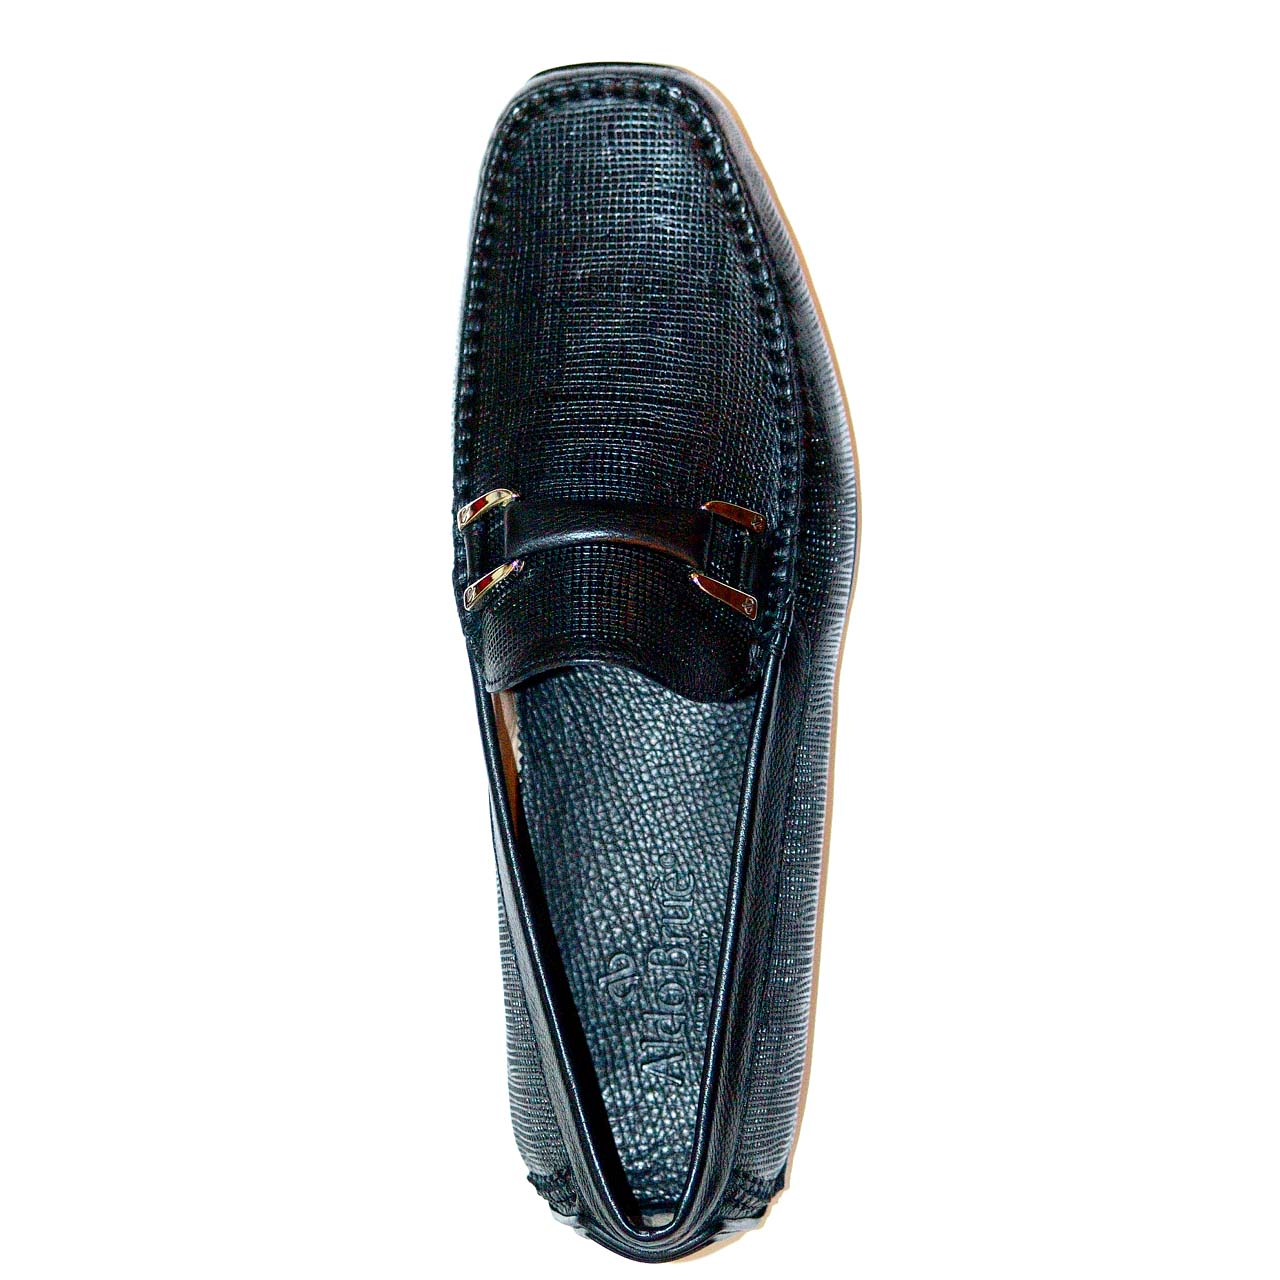 Aldo Brue Andrea Perforated Leather Driver Black